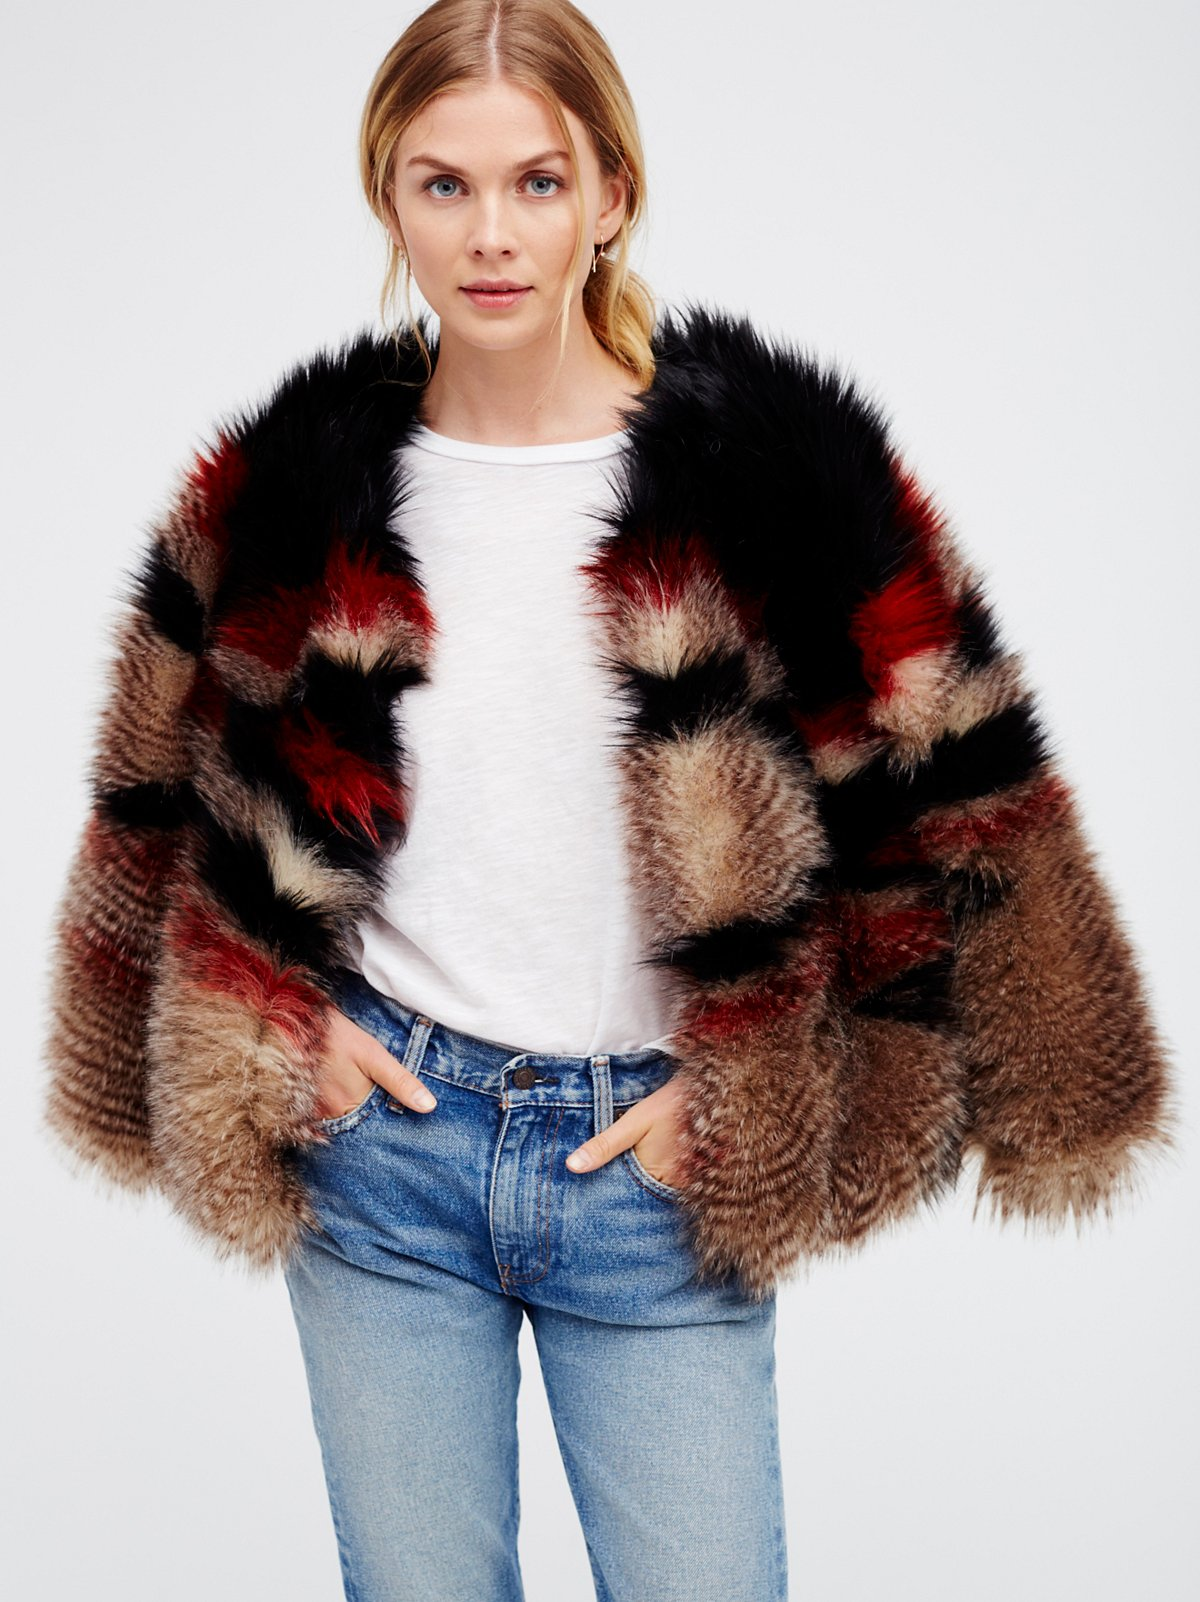 Scarlet Faux Fur Jacket at Free People Clothing Boutique